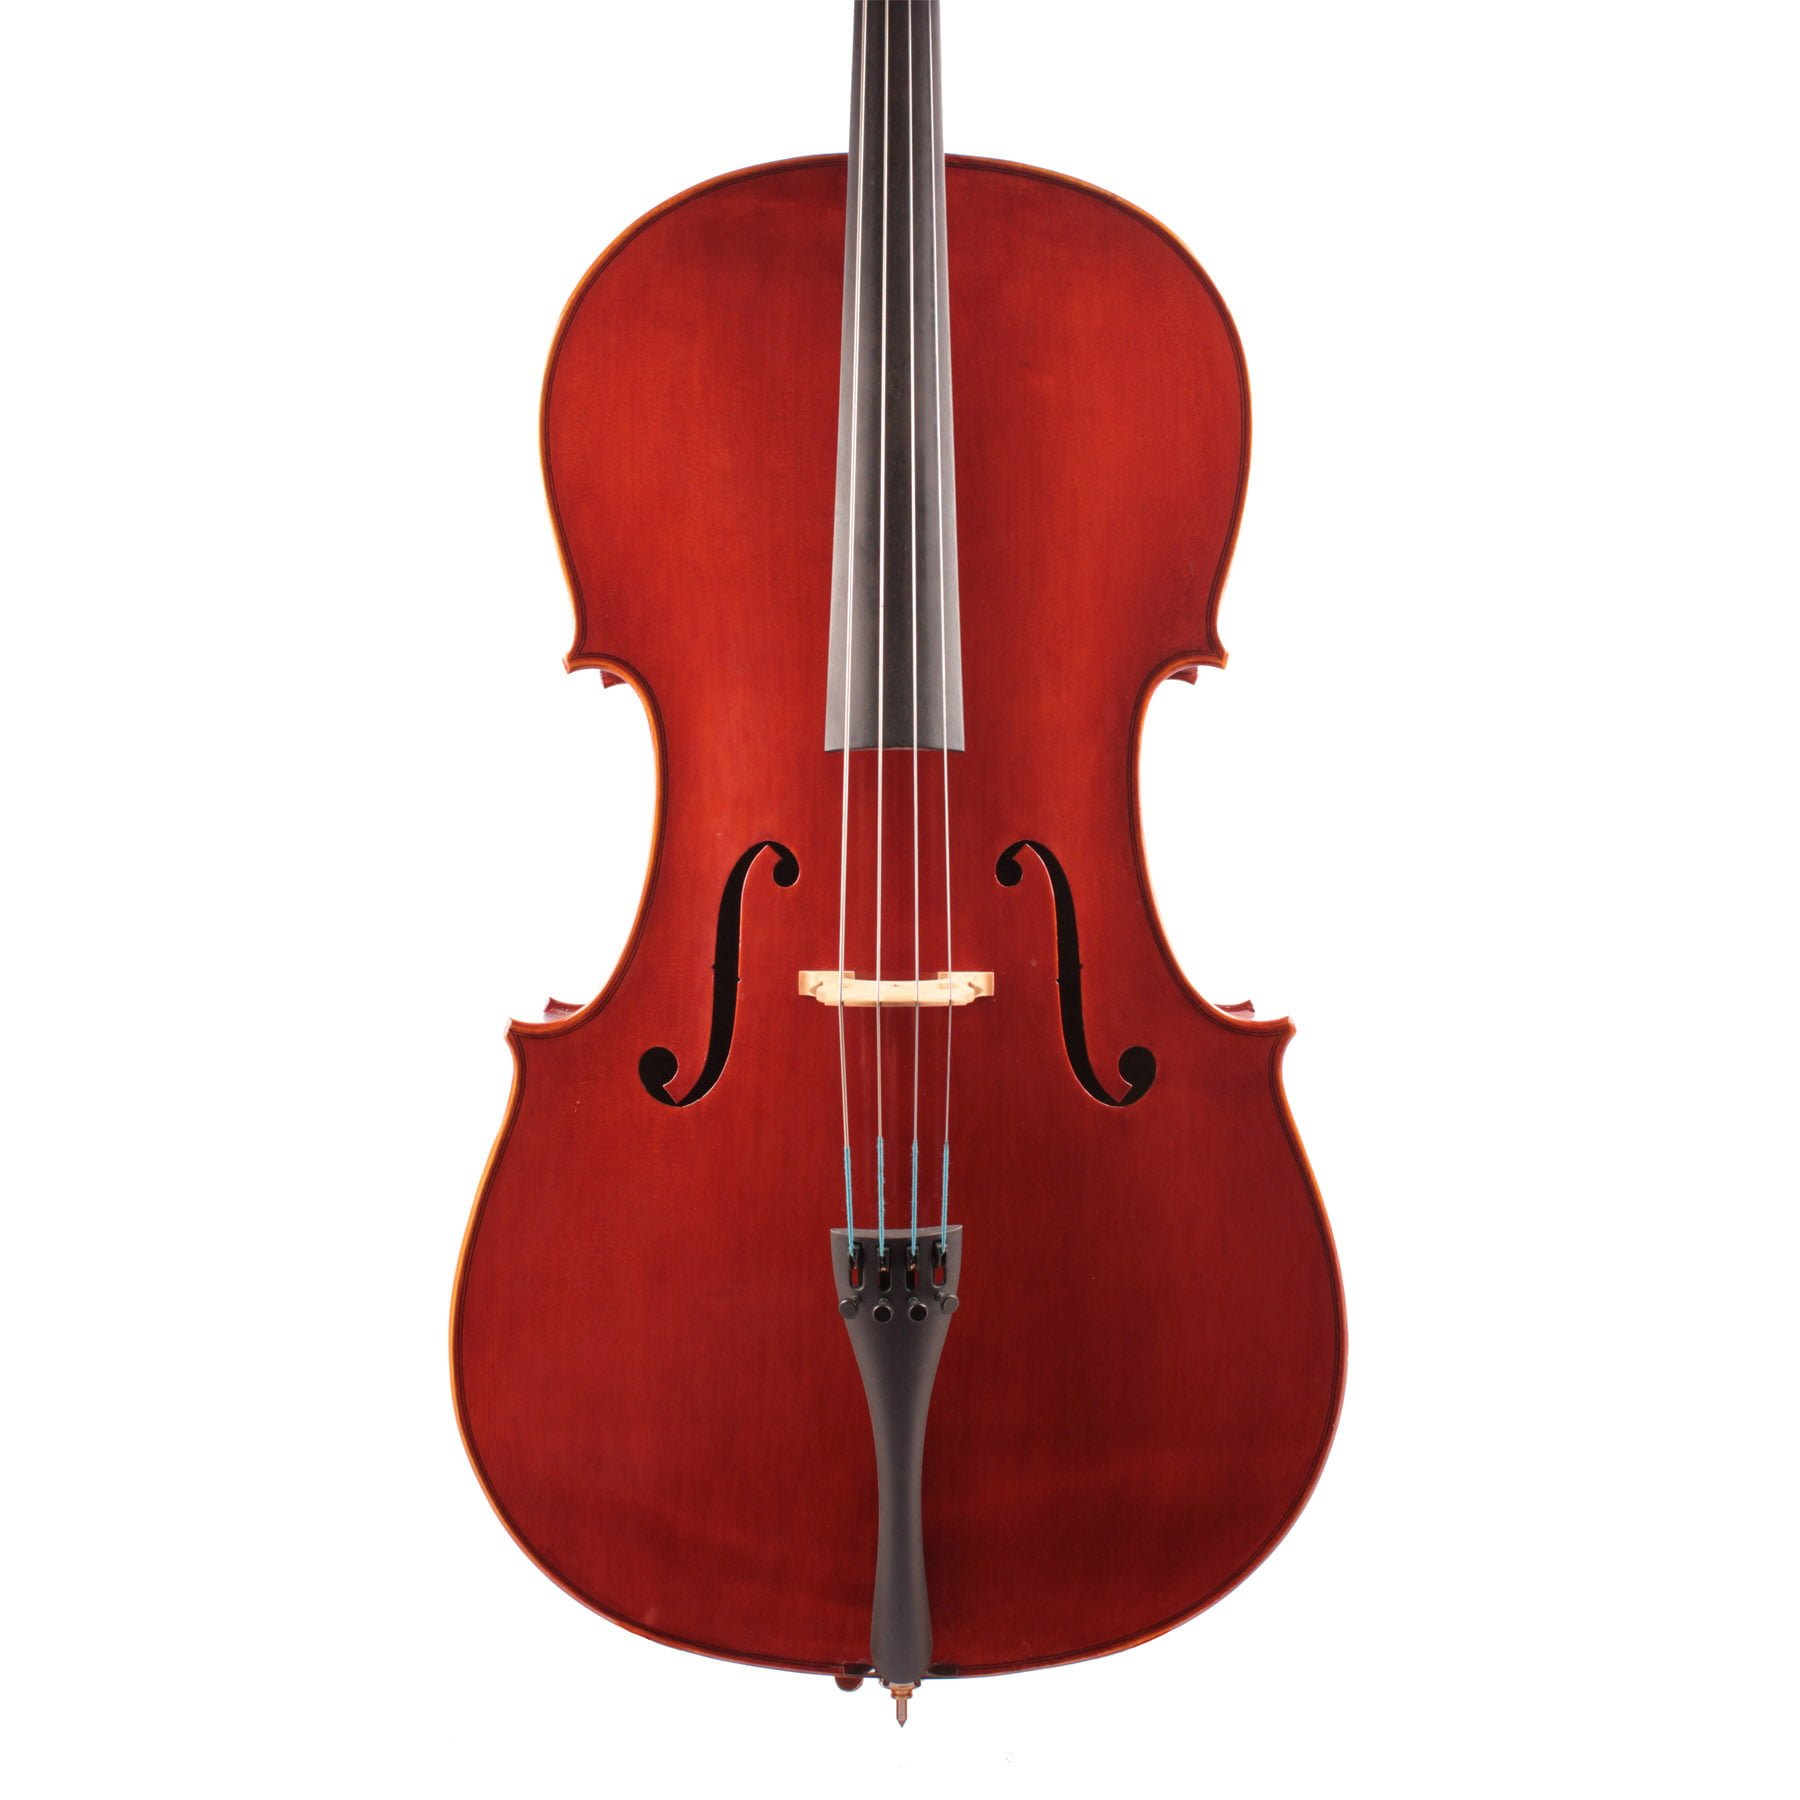 The front view of a Jay Haide Plain Cello